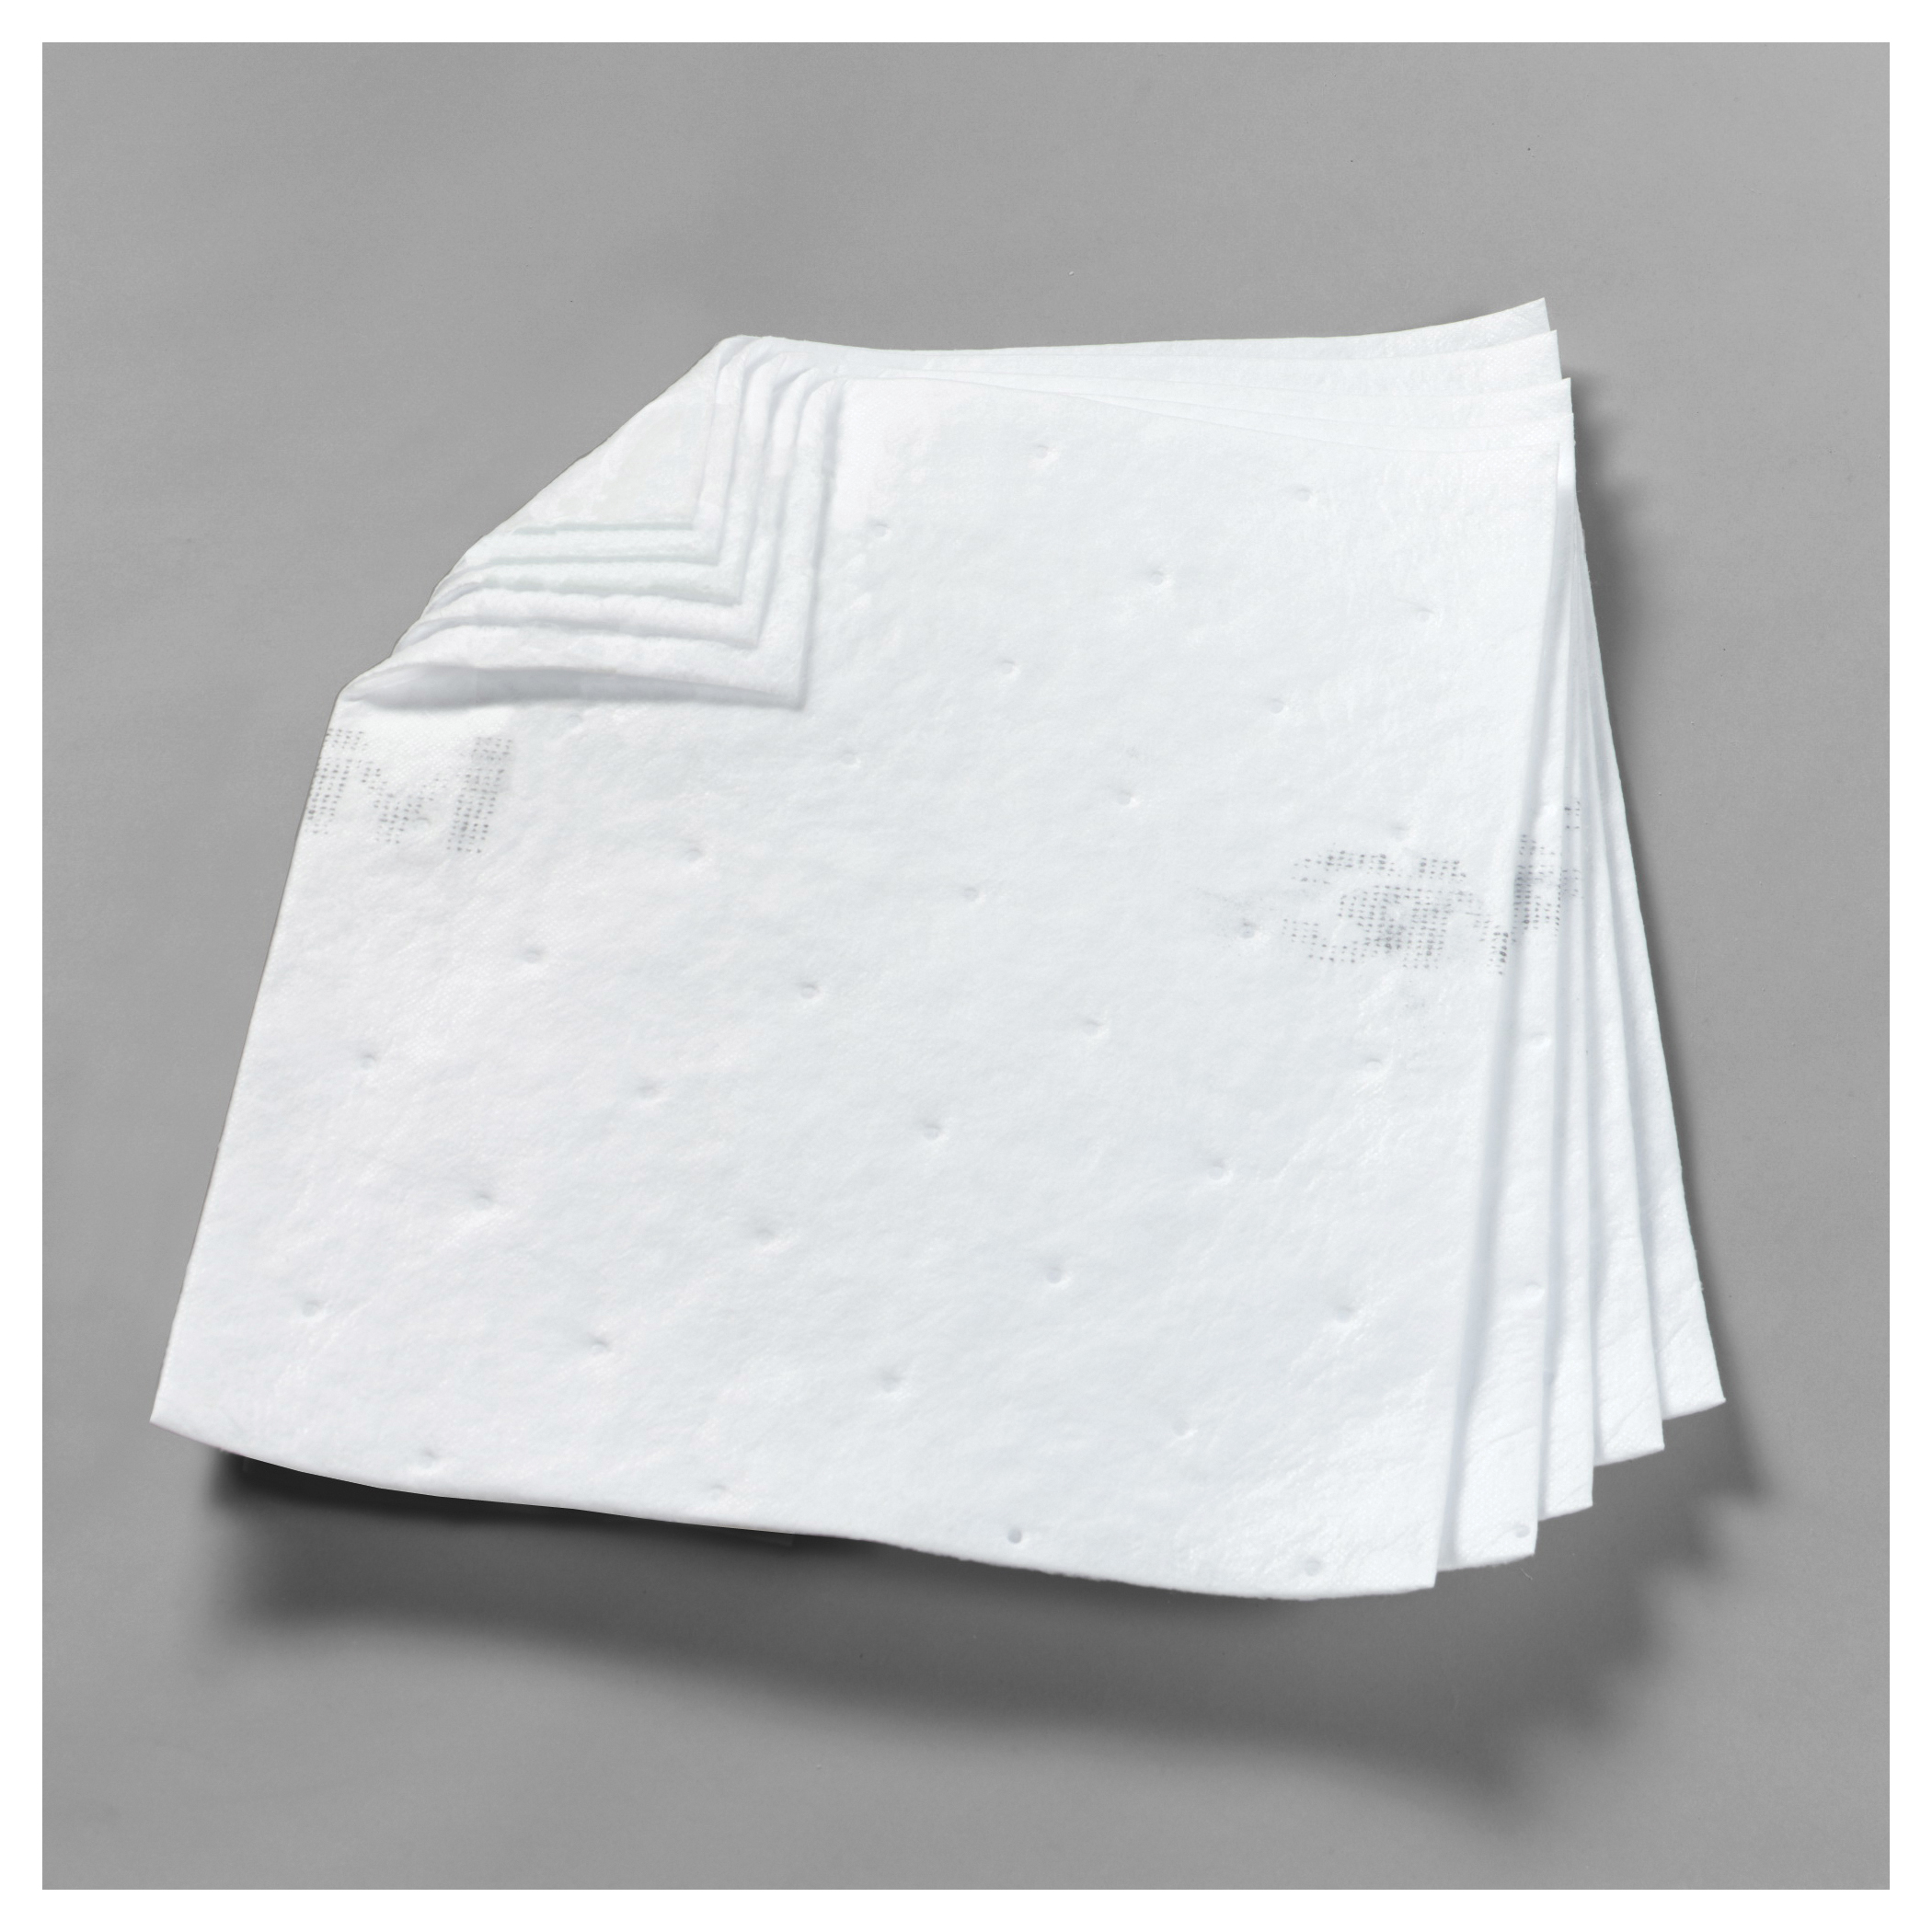 3M™ 051138-28991 HP-156 High Capacity Sorbent Pad, 43 in L x 48 in W x 1 in THK, 37.5 gal Absorption, Polypropylene